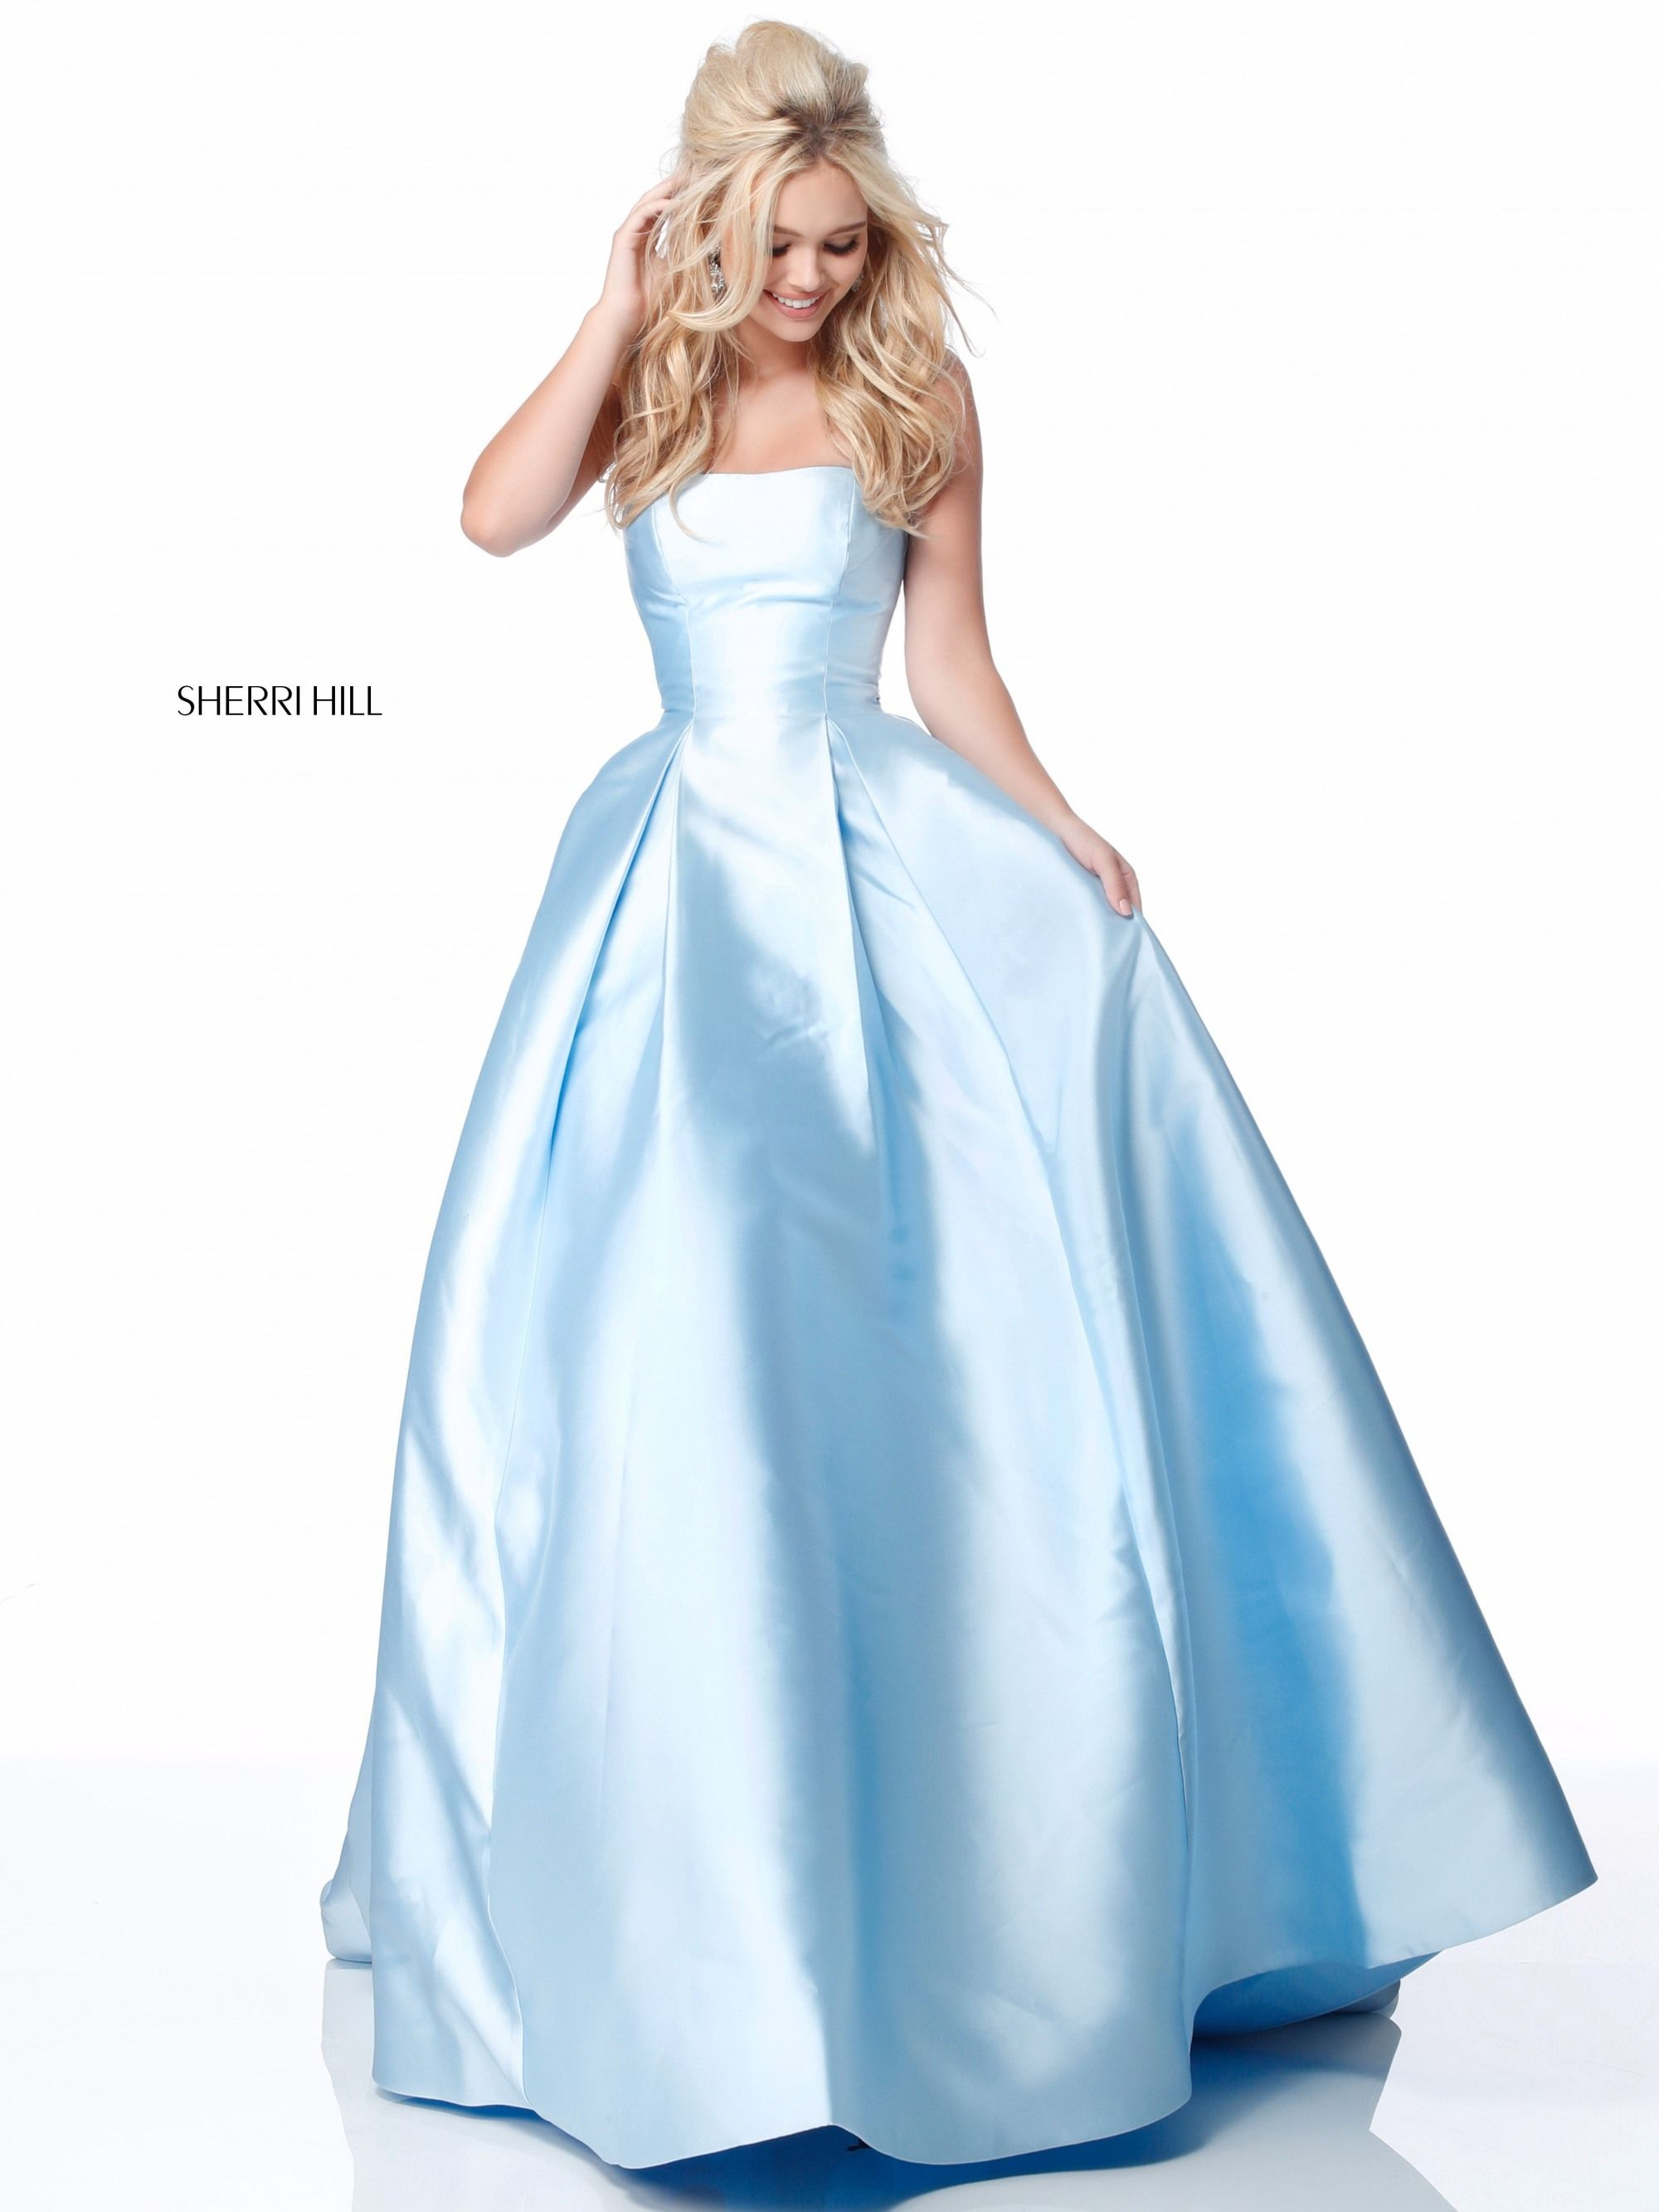 4ac8887de65 Buy Sherri Hill 51917 Strapless Prom Dress today at MadameBridal.com  authorized retailer store. With every order get your free.